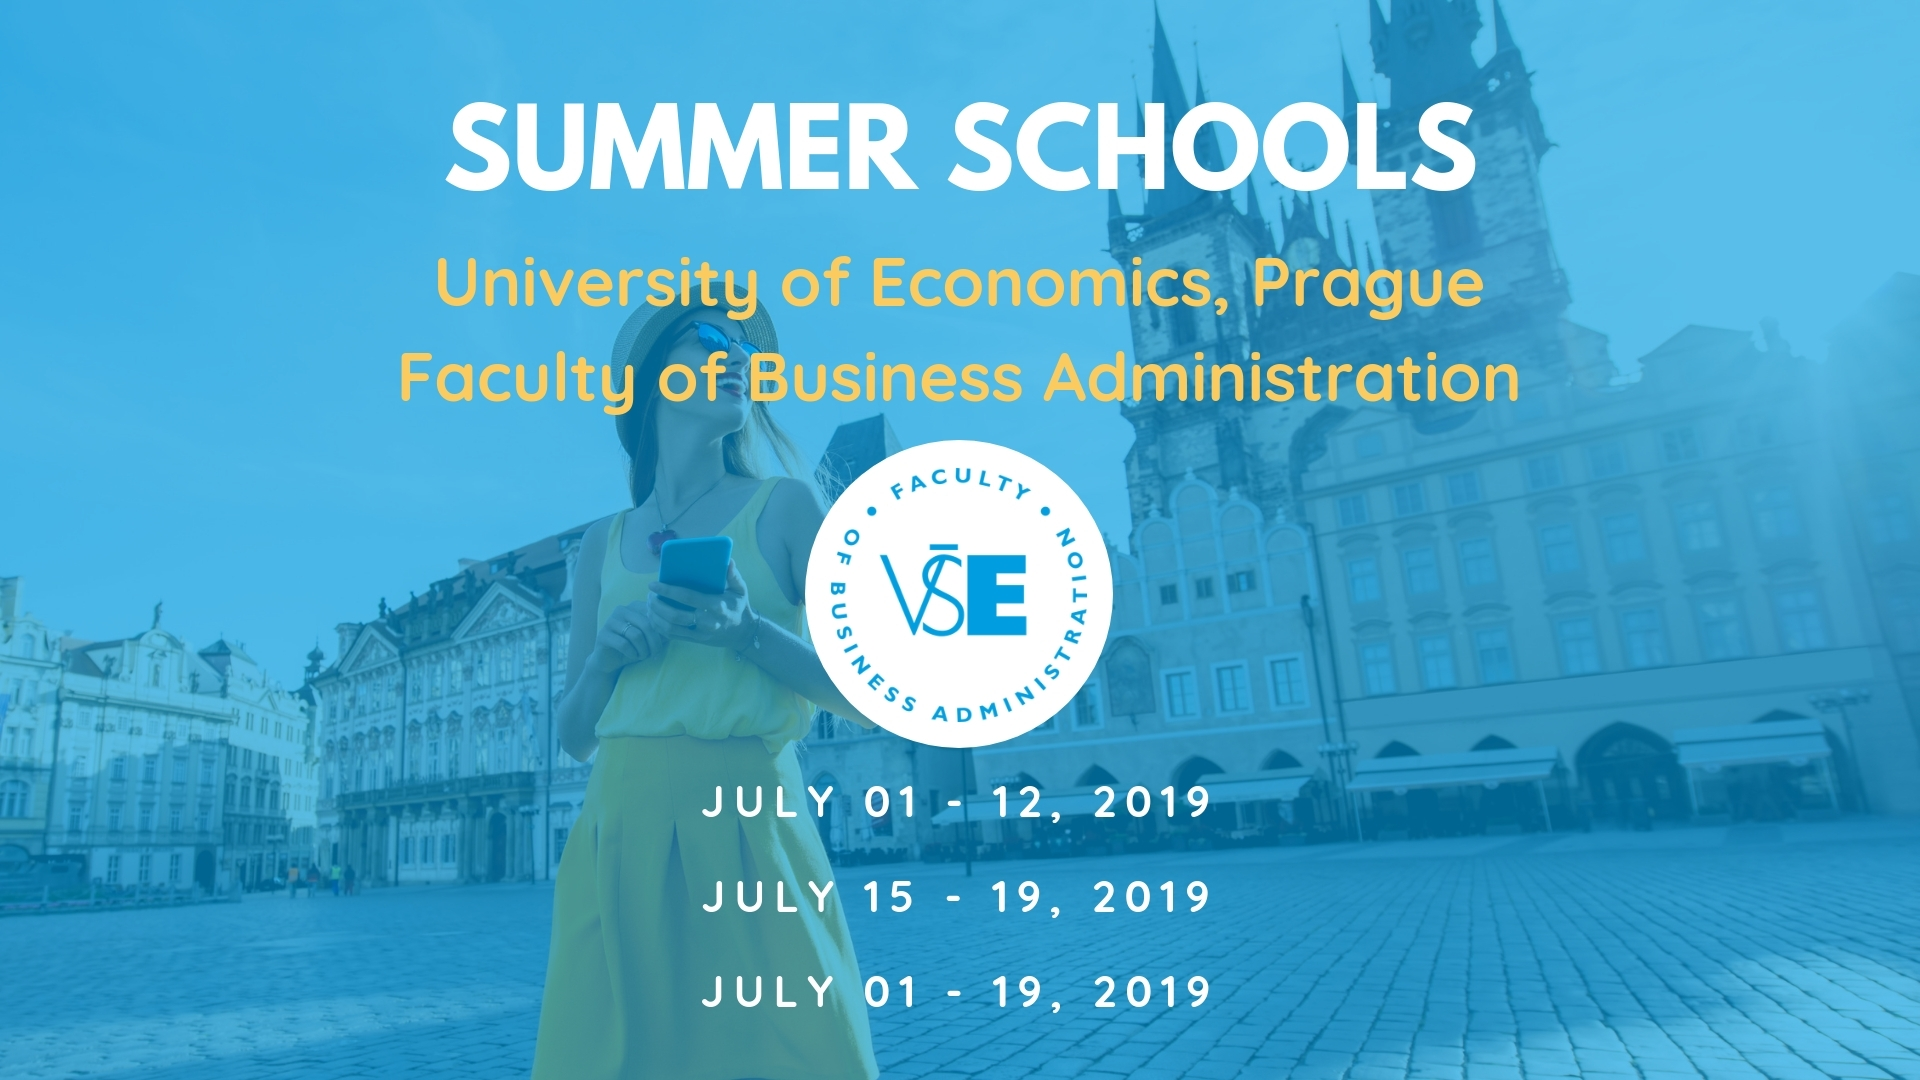 Summer Schools at the Faculty of Business Administration, University of Economics, Prague